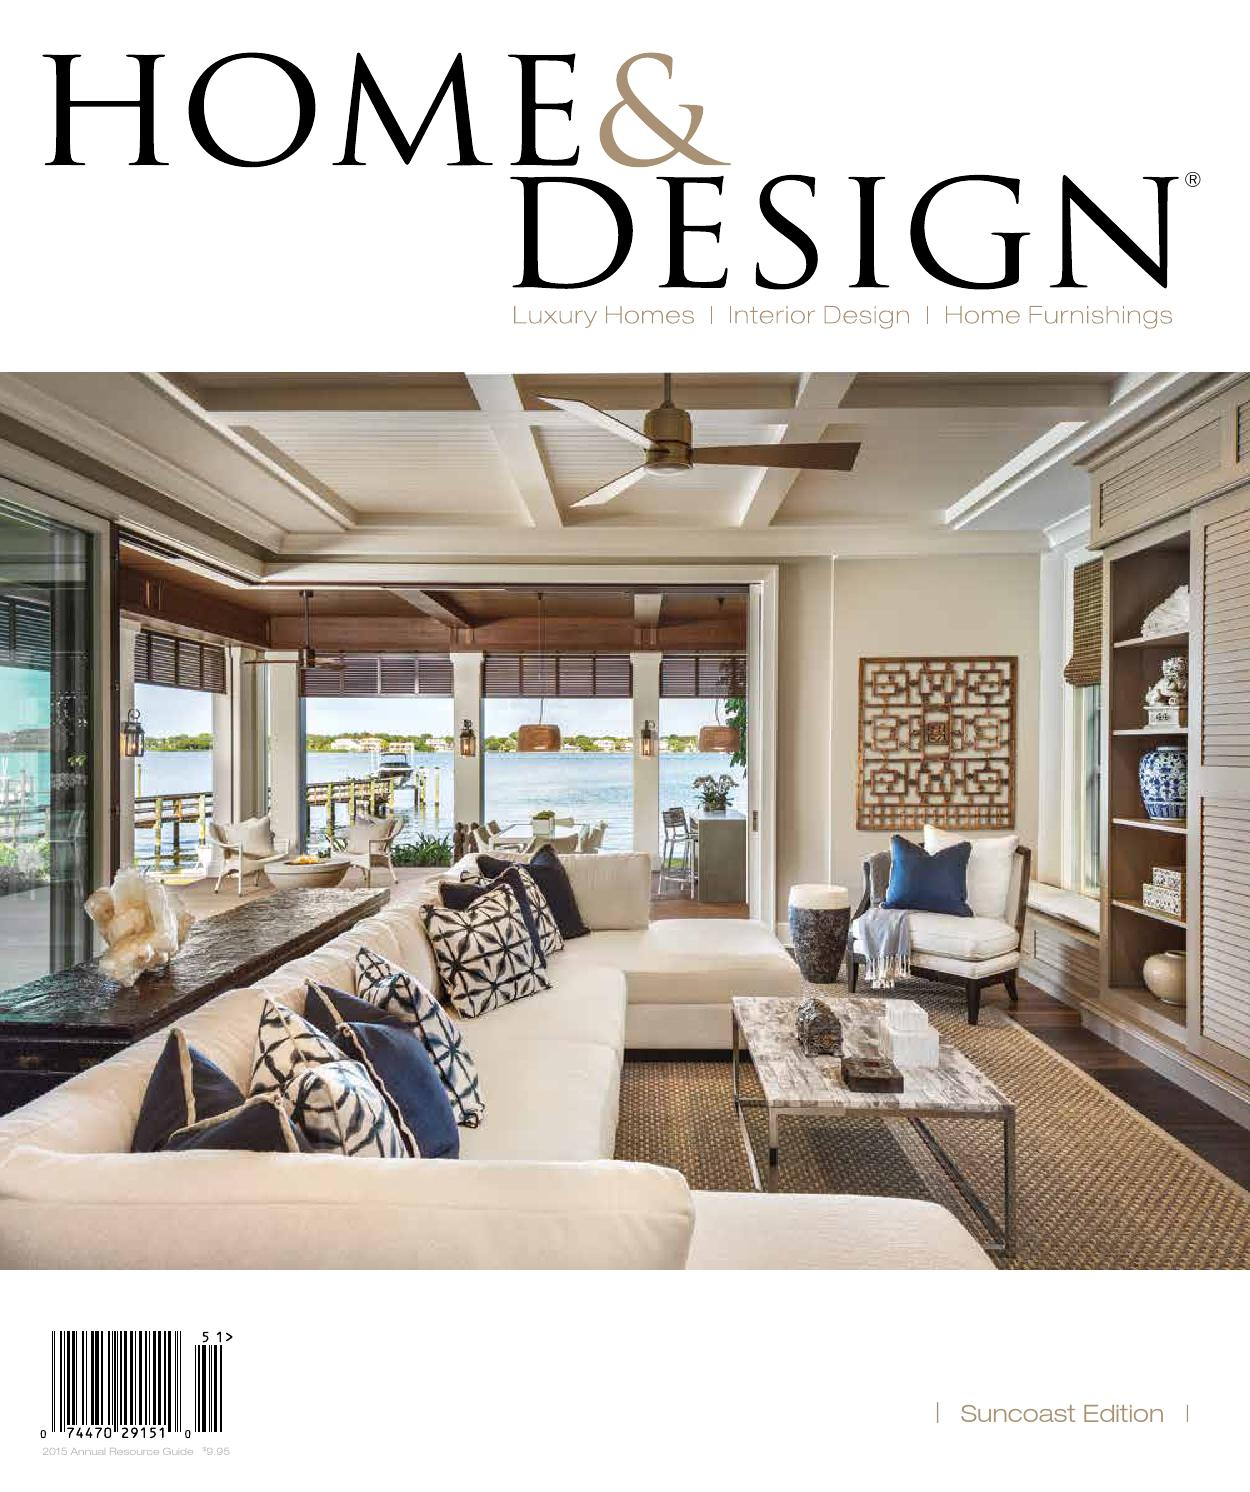 Home Design Magazine Annual Resource Guide 2015 Suncoast Florida Edition By Anthony Spano